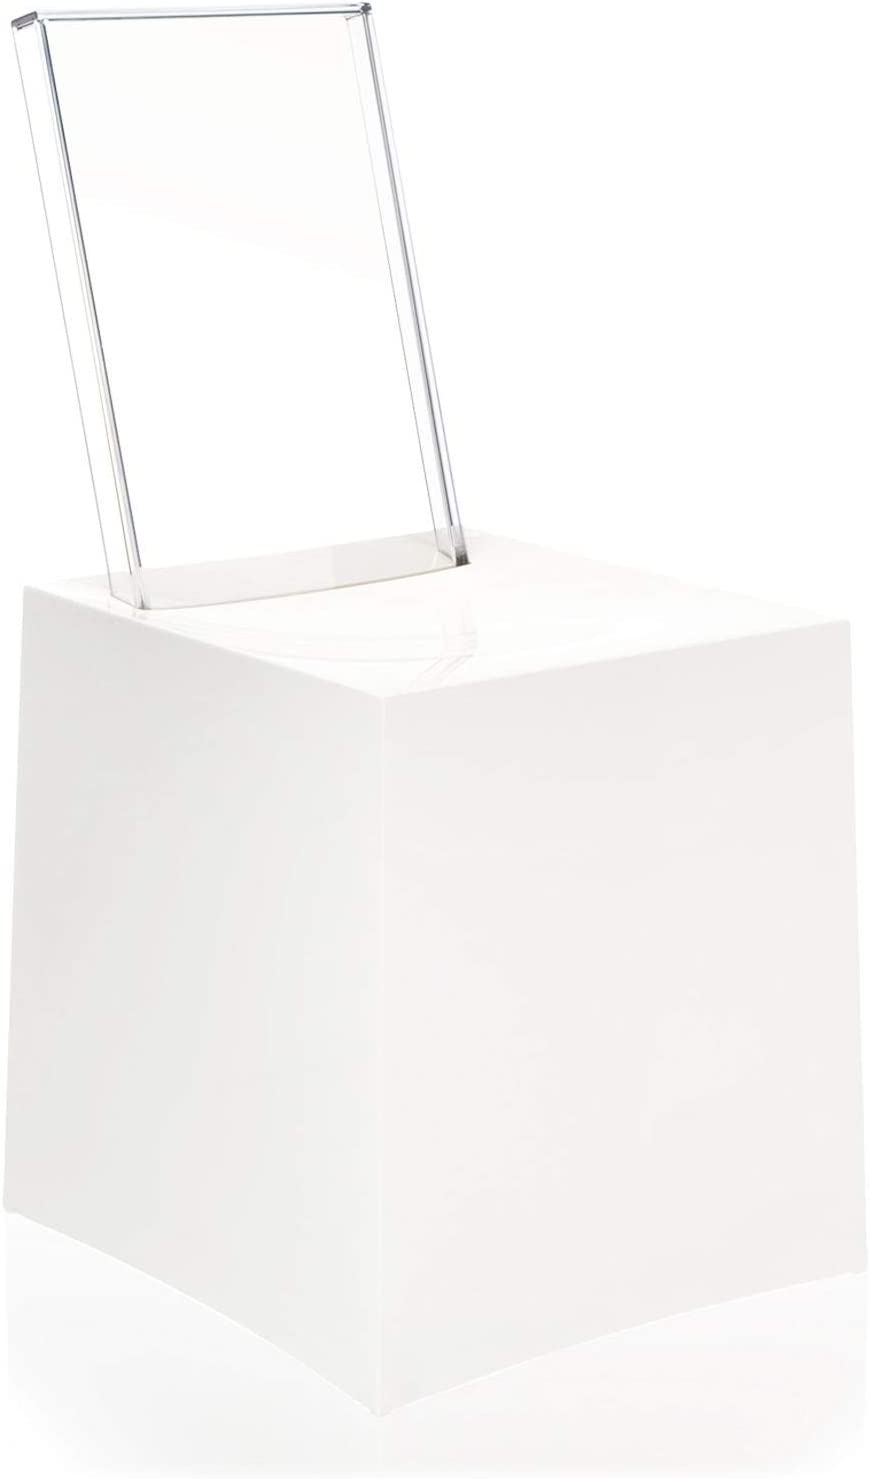 Kartell Miss Less Silla, Blanco, 42x85x45 cm: Amazon.es: Hogar